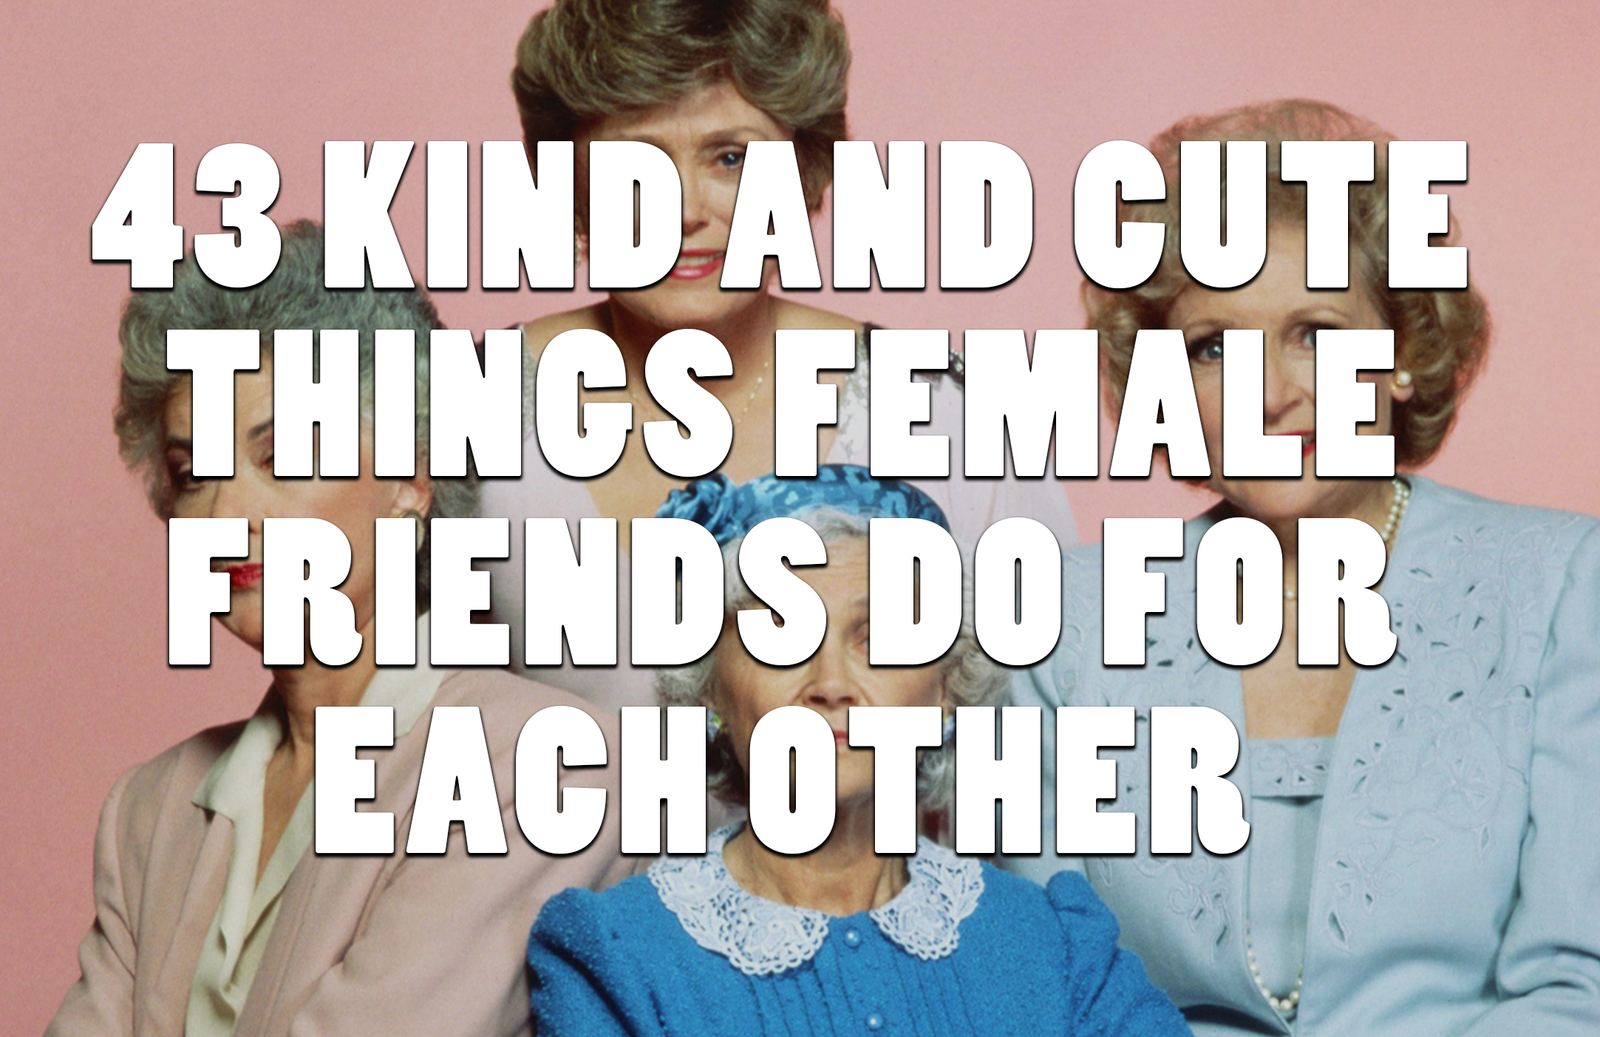 43 Cute Little Things Female Friends Do For Each Other